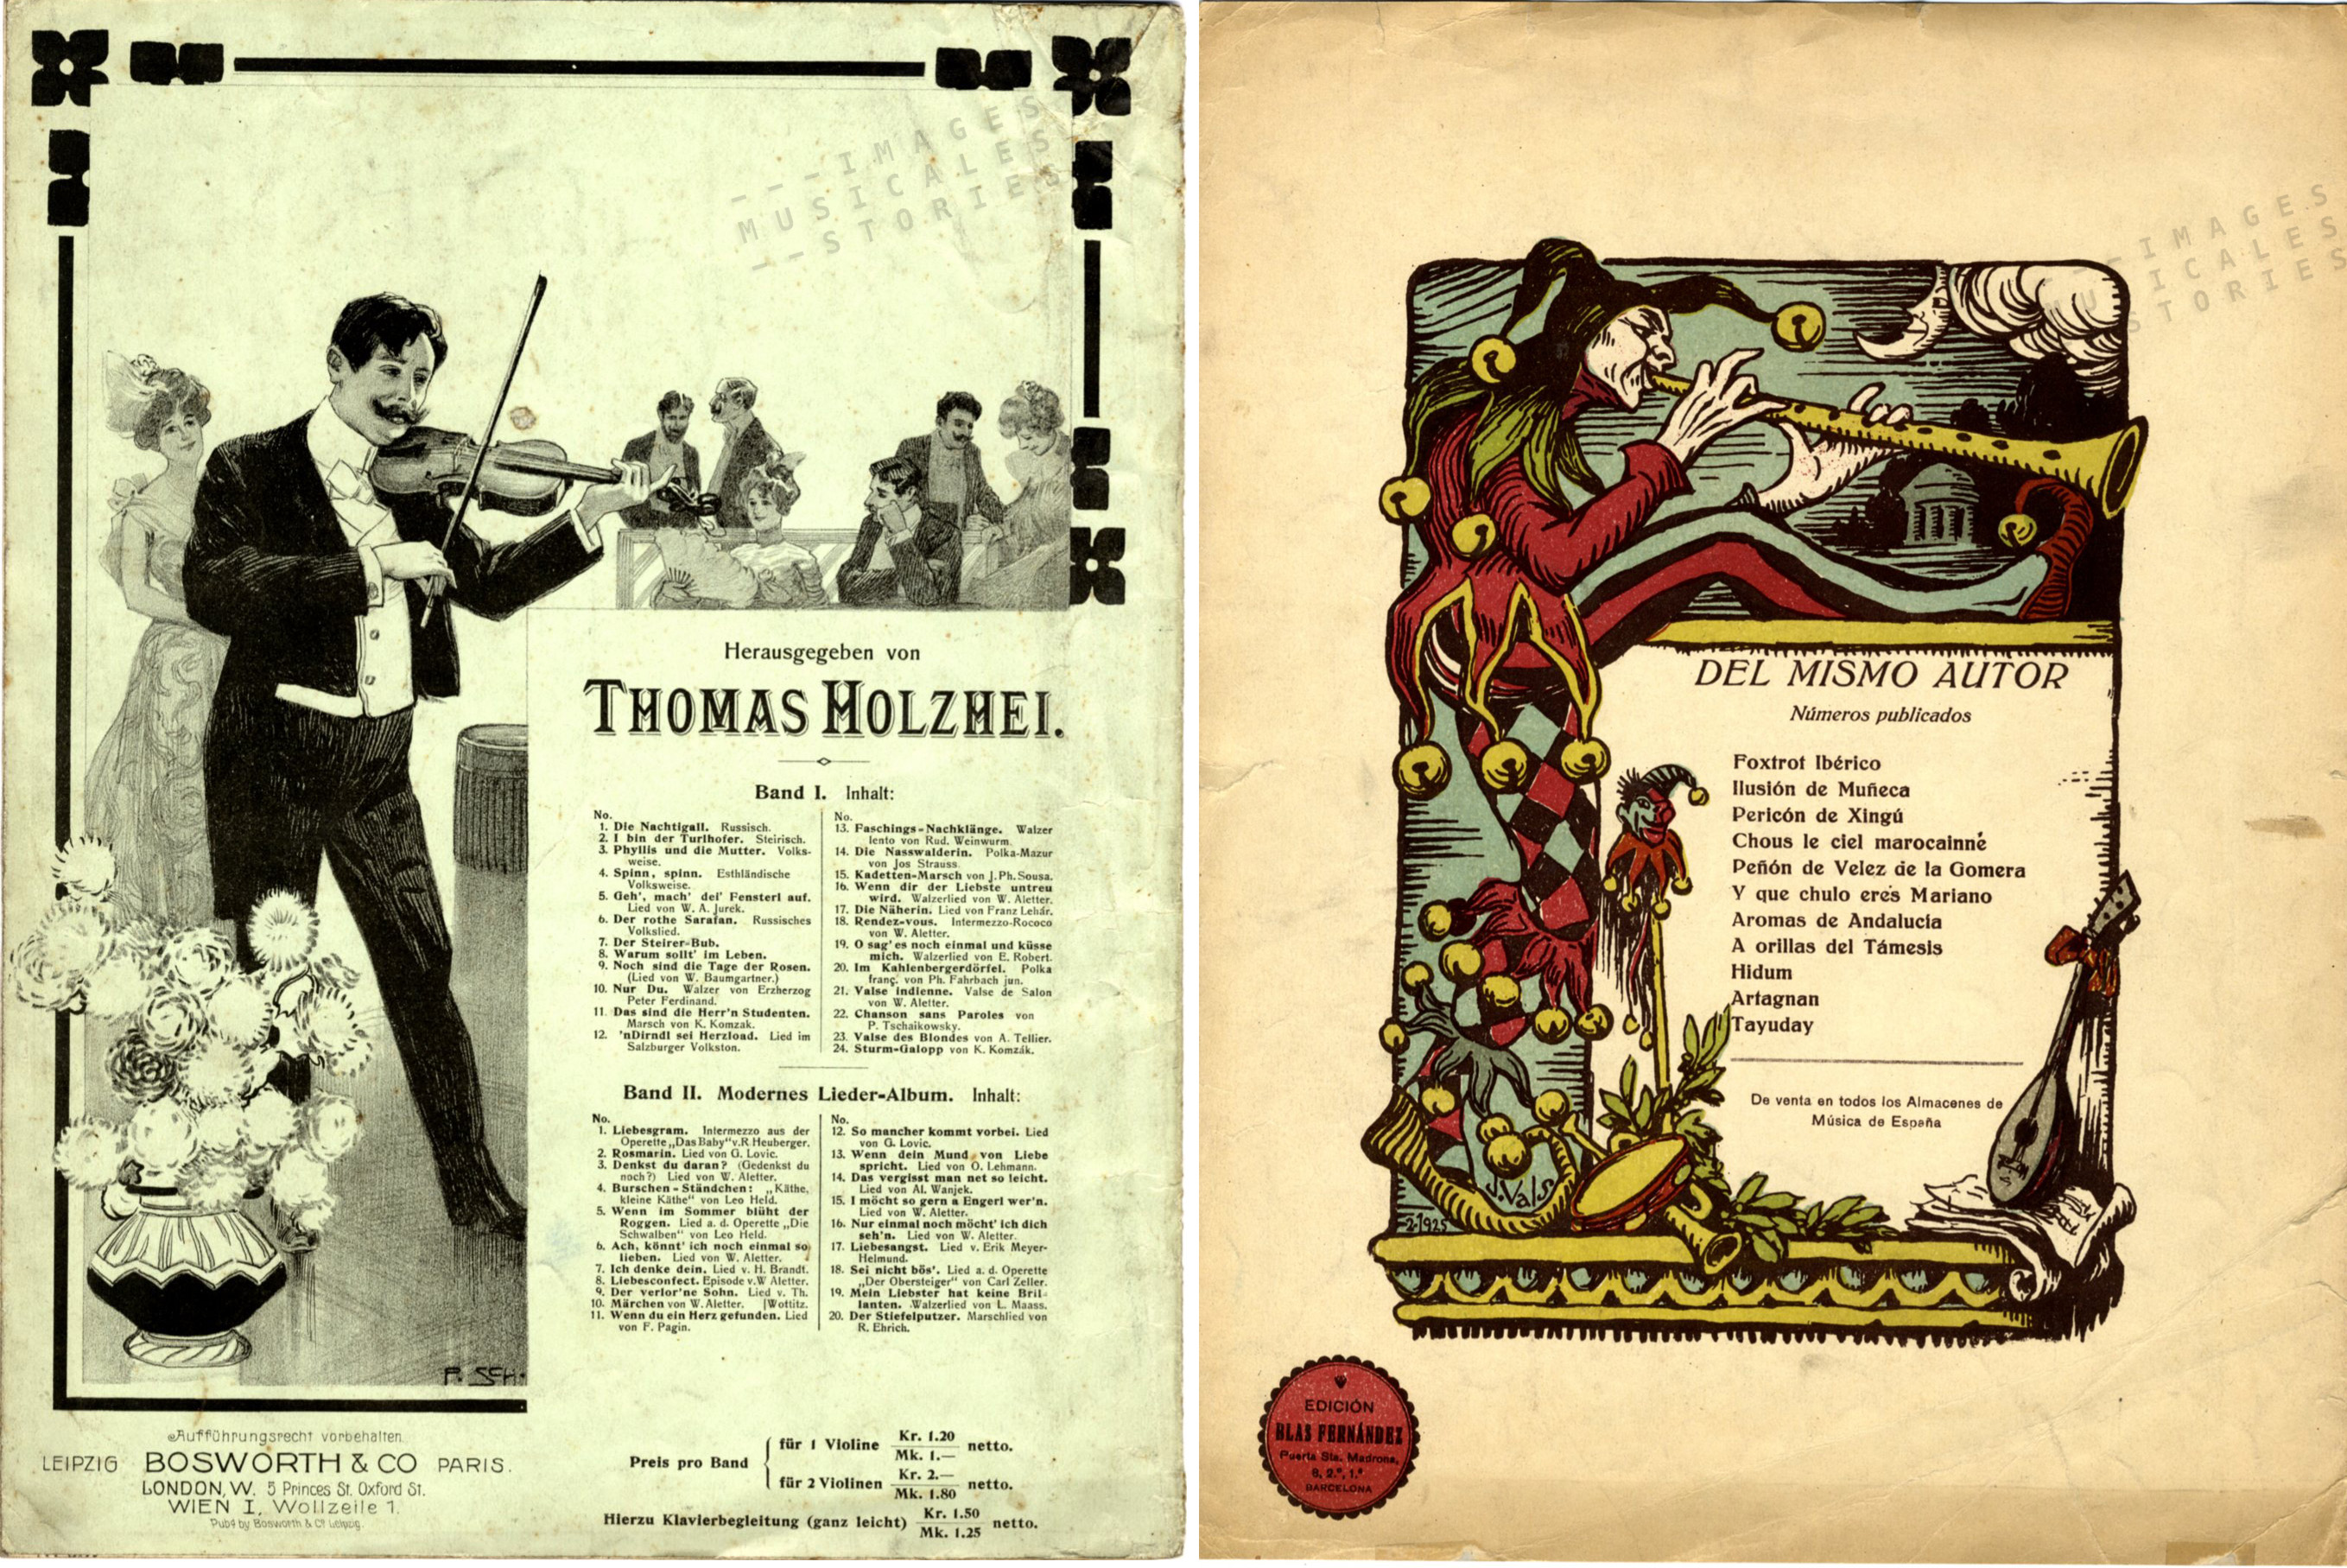 Back covers of sheet music illustrated by P. Schumann and J. Vals